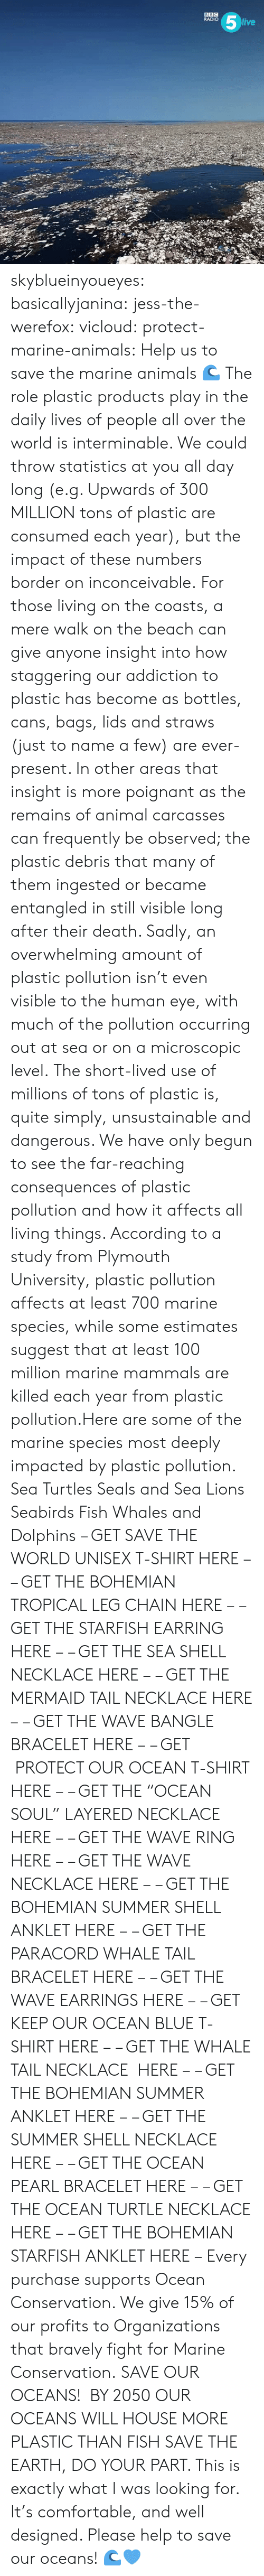 "jess: RADIO  ive skyblueinyoueyes:  basicallyjanina: jess-the-werefox:   vicloud:   protect-marine-animals:  Help us to save the marine animals 🌊 The role plastic products play in the daily lives of people all over the world is interminable. We could throw statistics at you all day long (e.g. Upwards of 300 MILLION tons of plastic are consumed each year), but the impact of these numbers border on inconceivable. For those living on the coasts, a mere walk on the beach can give anyone insight into how staggering our addiction to plastic has become as bottles, cans, bags, lids and straws (just to name a few) are ever-present. In other areas that insight is more poignant as the remains of animal carcasses can frequently be observed; the plastic debris that many of them ingested or became entangled in still visible long after their death. Sadly, an overwhelming amount of plastic pollution isn't even visible to the human eye, with much of the pollution occurring out at sea or on a microscopic level. The short-lived use of millions of tons of plastic is, quite simply, unsustainable and dangerous. We have only begun to see the far-reaching consequences of plastic pollution and how it affects all living things. According to a study from Plymouth University, plastic pollution affects at least 700 marine species, while some estimates suggest that at least 100 million marine mammals are killed each year from plastic pollution.Here are some of the marine species most deeply impacted by plastic pollution. Sea Turtles Seals and Sea Lions Seabirds Fish Whales and Dolphins – GET SAVE THE WORLD UNISEX T-SHIRT HERE – – GET THE BOHEMIAN TROPICAL LEG CHAIN HERE – – GET THE STARFISH EARRING HERE – – GET THE SEA SHELL NECKLACE HERE – – GET THE MERMAID TAIL NECKLACE HERE – – GET THE WAVE BANGLE BRACELET HERE – – GET  PROTECT OUR OCEAN T-SHIRT HERE – – GET THE ""OCEAN SOUL"" LAYERED NECKLACE HERE – – GET THE WAVE RING HERE – – GET THE WAVE NECKLACE HERE – – GET THE BOHEMIAN SUMMER SHELL ANKLET HERE – – GET THE PARACORD WHALE TAIL BRACELET HERE – – GET THE WAVE EARRINGS HERE – – GET KEEP OUR OCEAN BLUE T-SHIRT HERE – – GET THE WHALE TAIL NECKLACE  HERE – – GET THE BOHEMIAN SUMMER ANKLET HERE – – GET THE SUMMER SHELL NECKLACE HERE – – GET THE OCEAN PEARL BRACELET HERE – – GET THE OCEAN TURTLE NECKLACE HERE – – GET THE BOHEMIAN STARFISH ANKLET HERE – Every purchase supports Ocean Conservation. We give 15% of our profits to Organizations that bravely fight for Marine Conservation.  SAVE OUR OCEANS!    BY 2050 OUR OCEANS WILL HOUSE MORE PLASTIC THAN FISH   SAVE THE EARTH, DO YOUR PART.   This is exactly what I was looking for. It's comfortable, and well designed. Please help to save our oceans! 🌊💙"